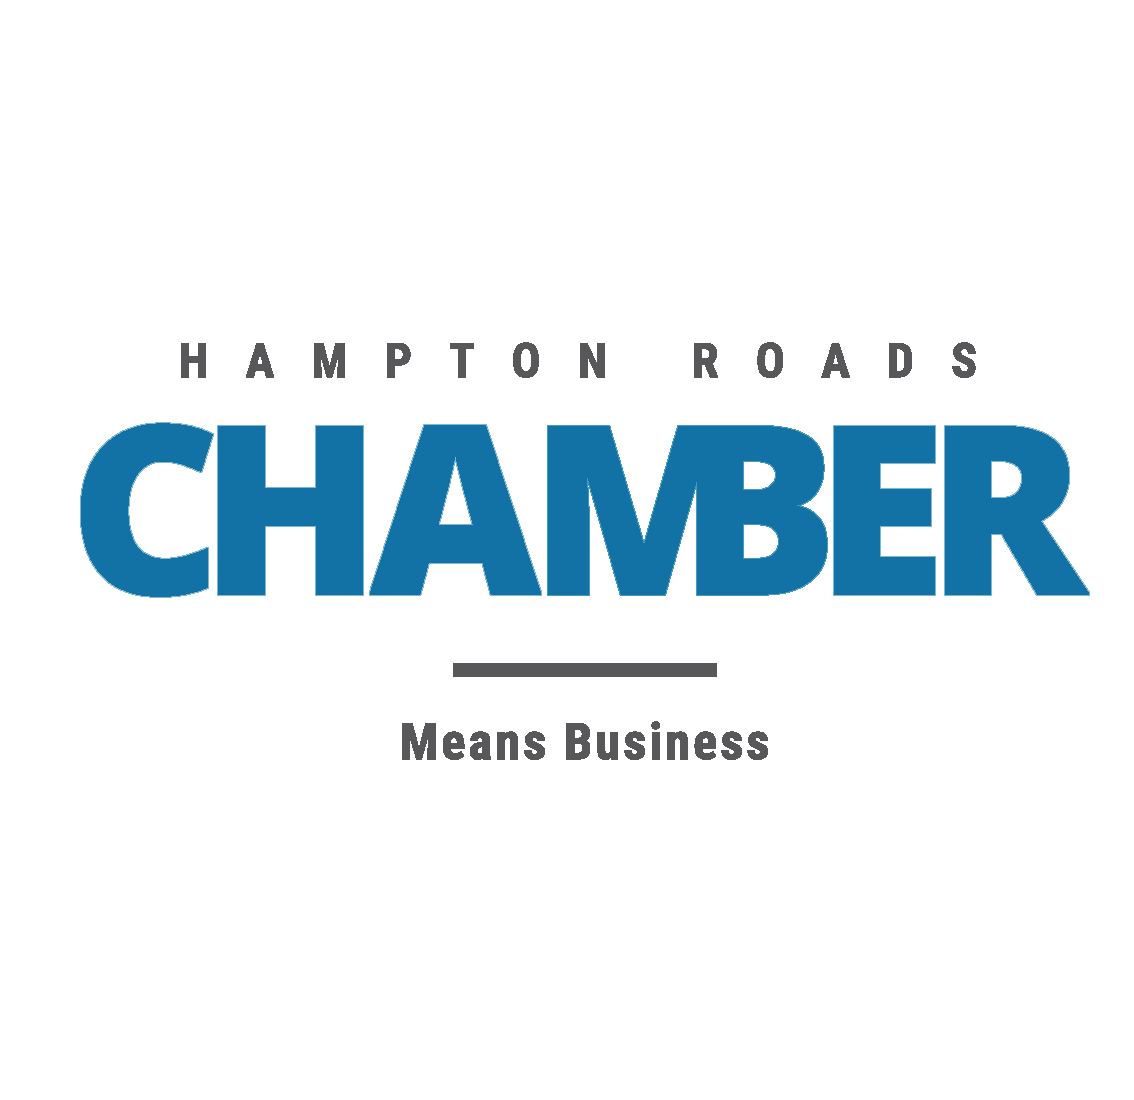 The Hampton Roads Chamber Rebrands